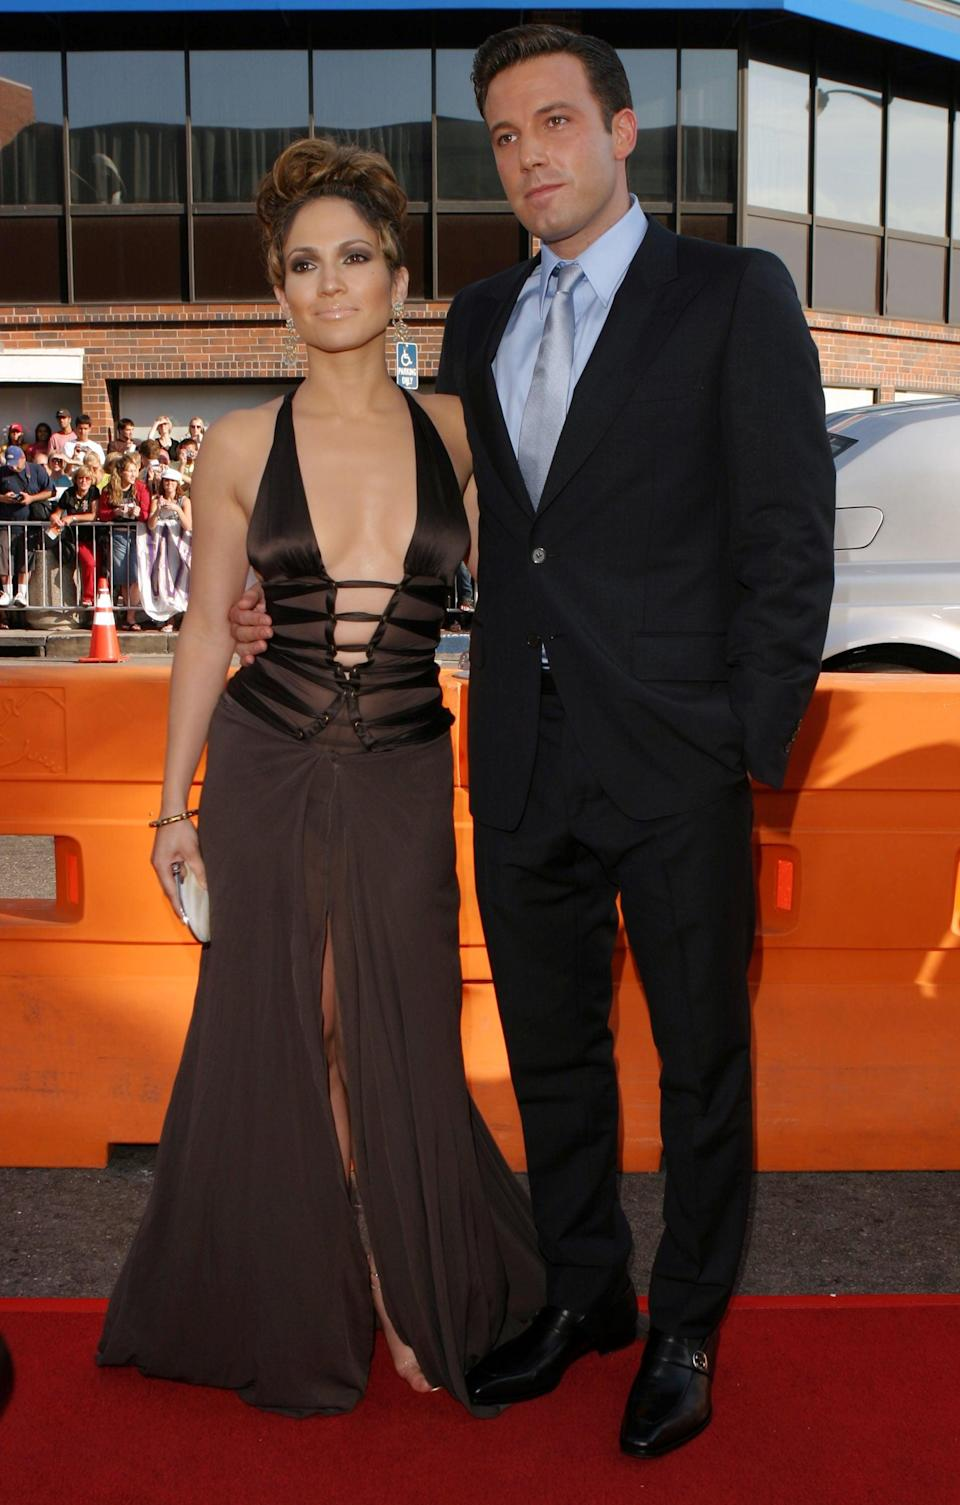 <p>Remember this? For the <strong>Gigli</strong> premiere in 2003, Jennifer showed off her curves in a brown Gucci gown, while Ben paired baby blue with his black suit.</p>